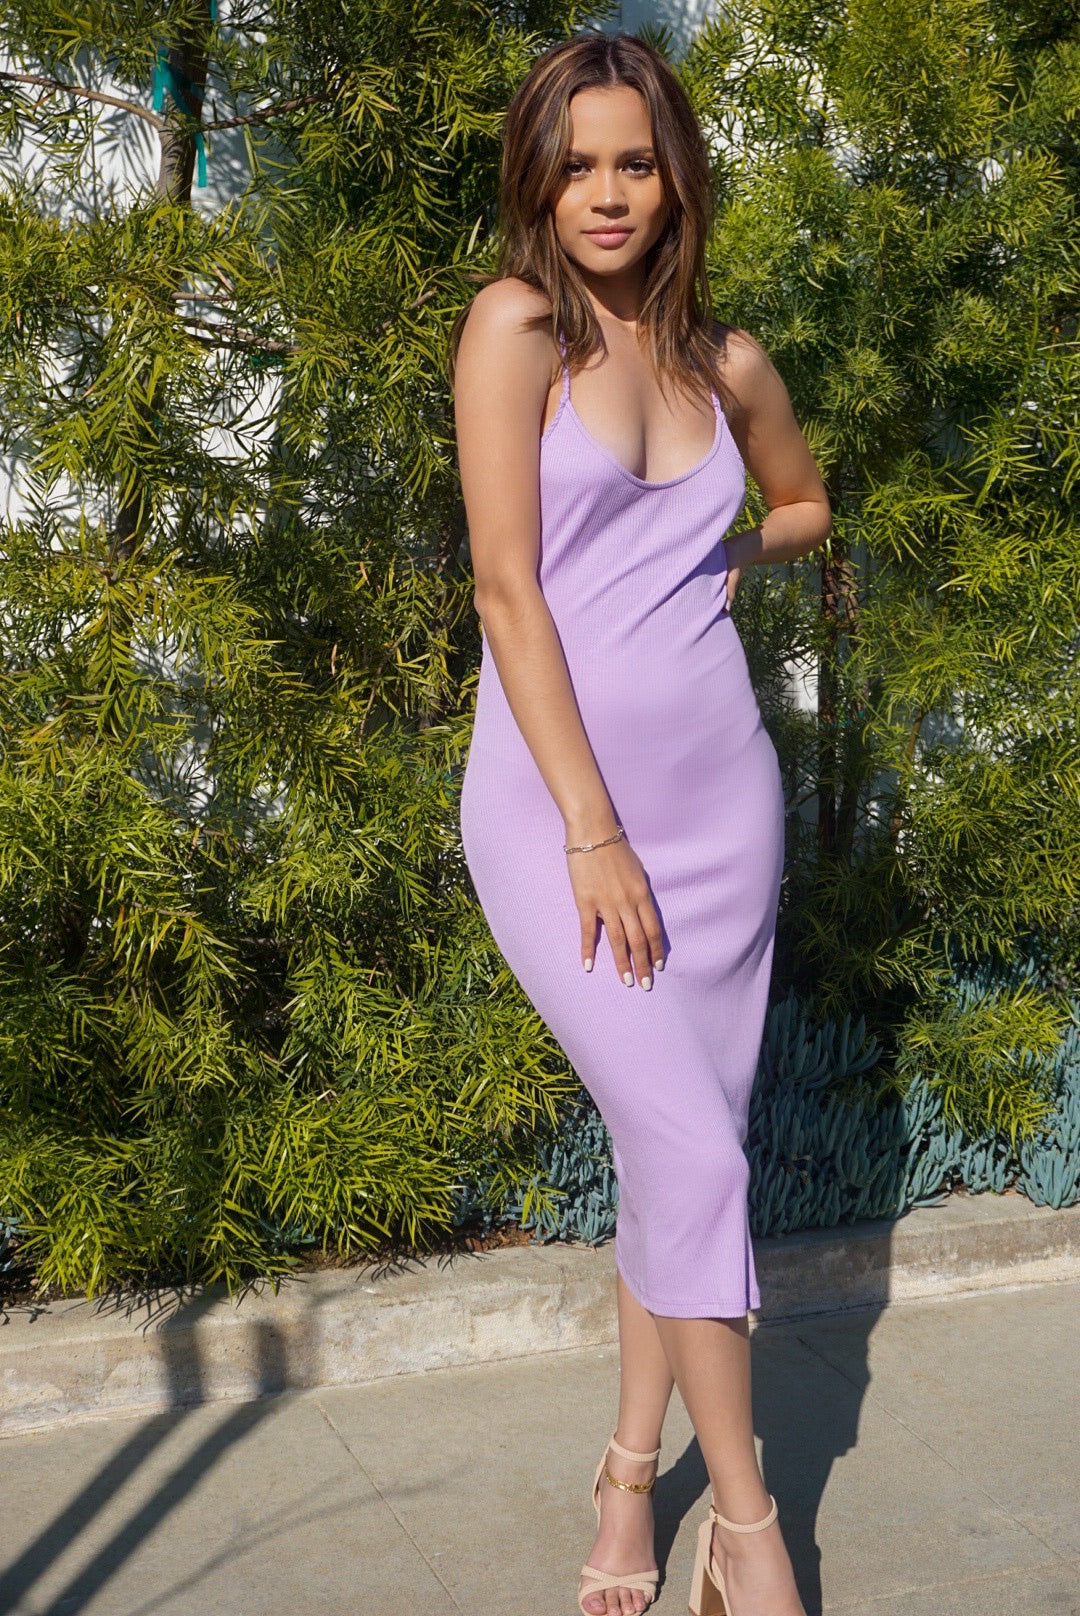 Emma Lavender Dress